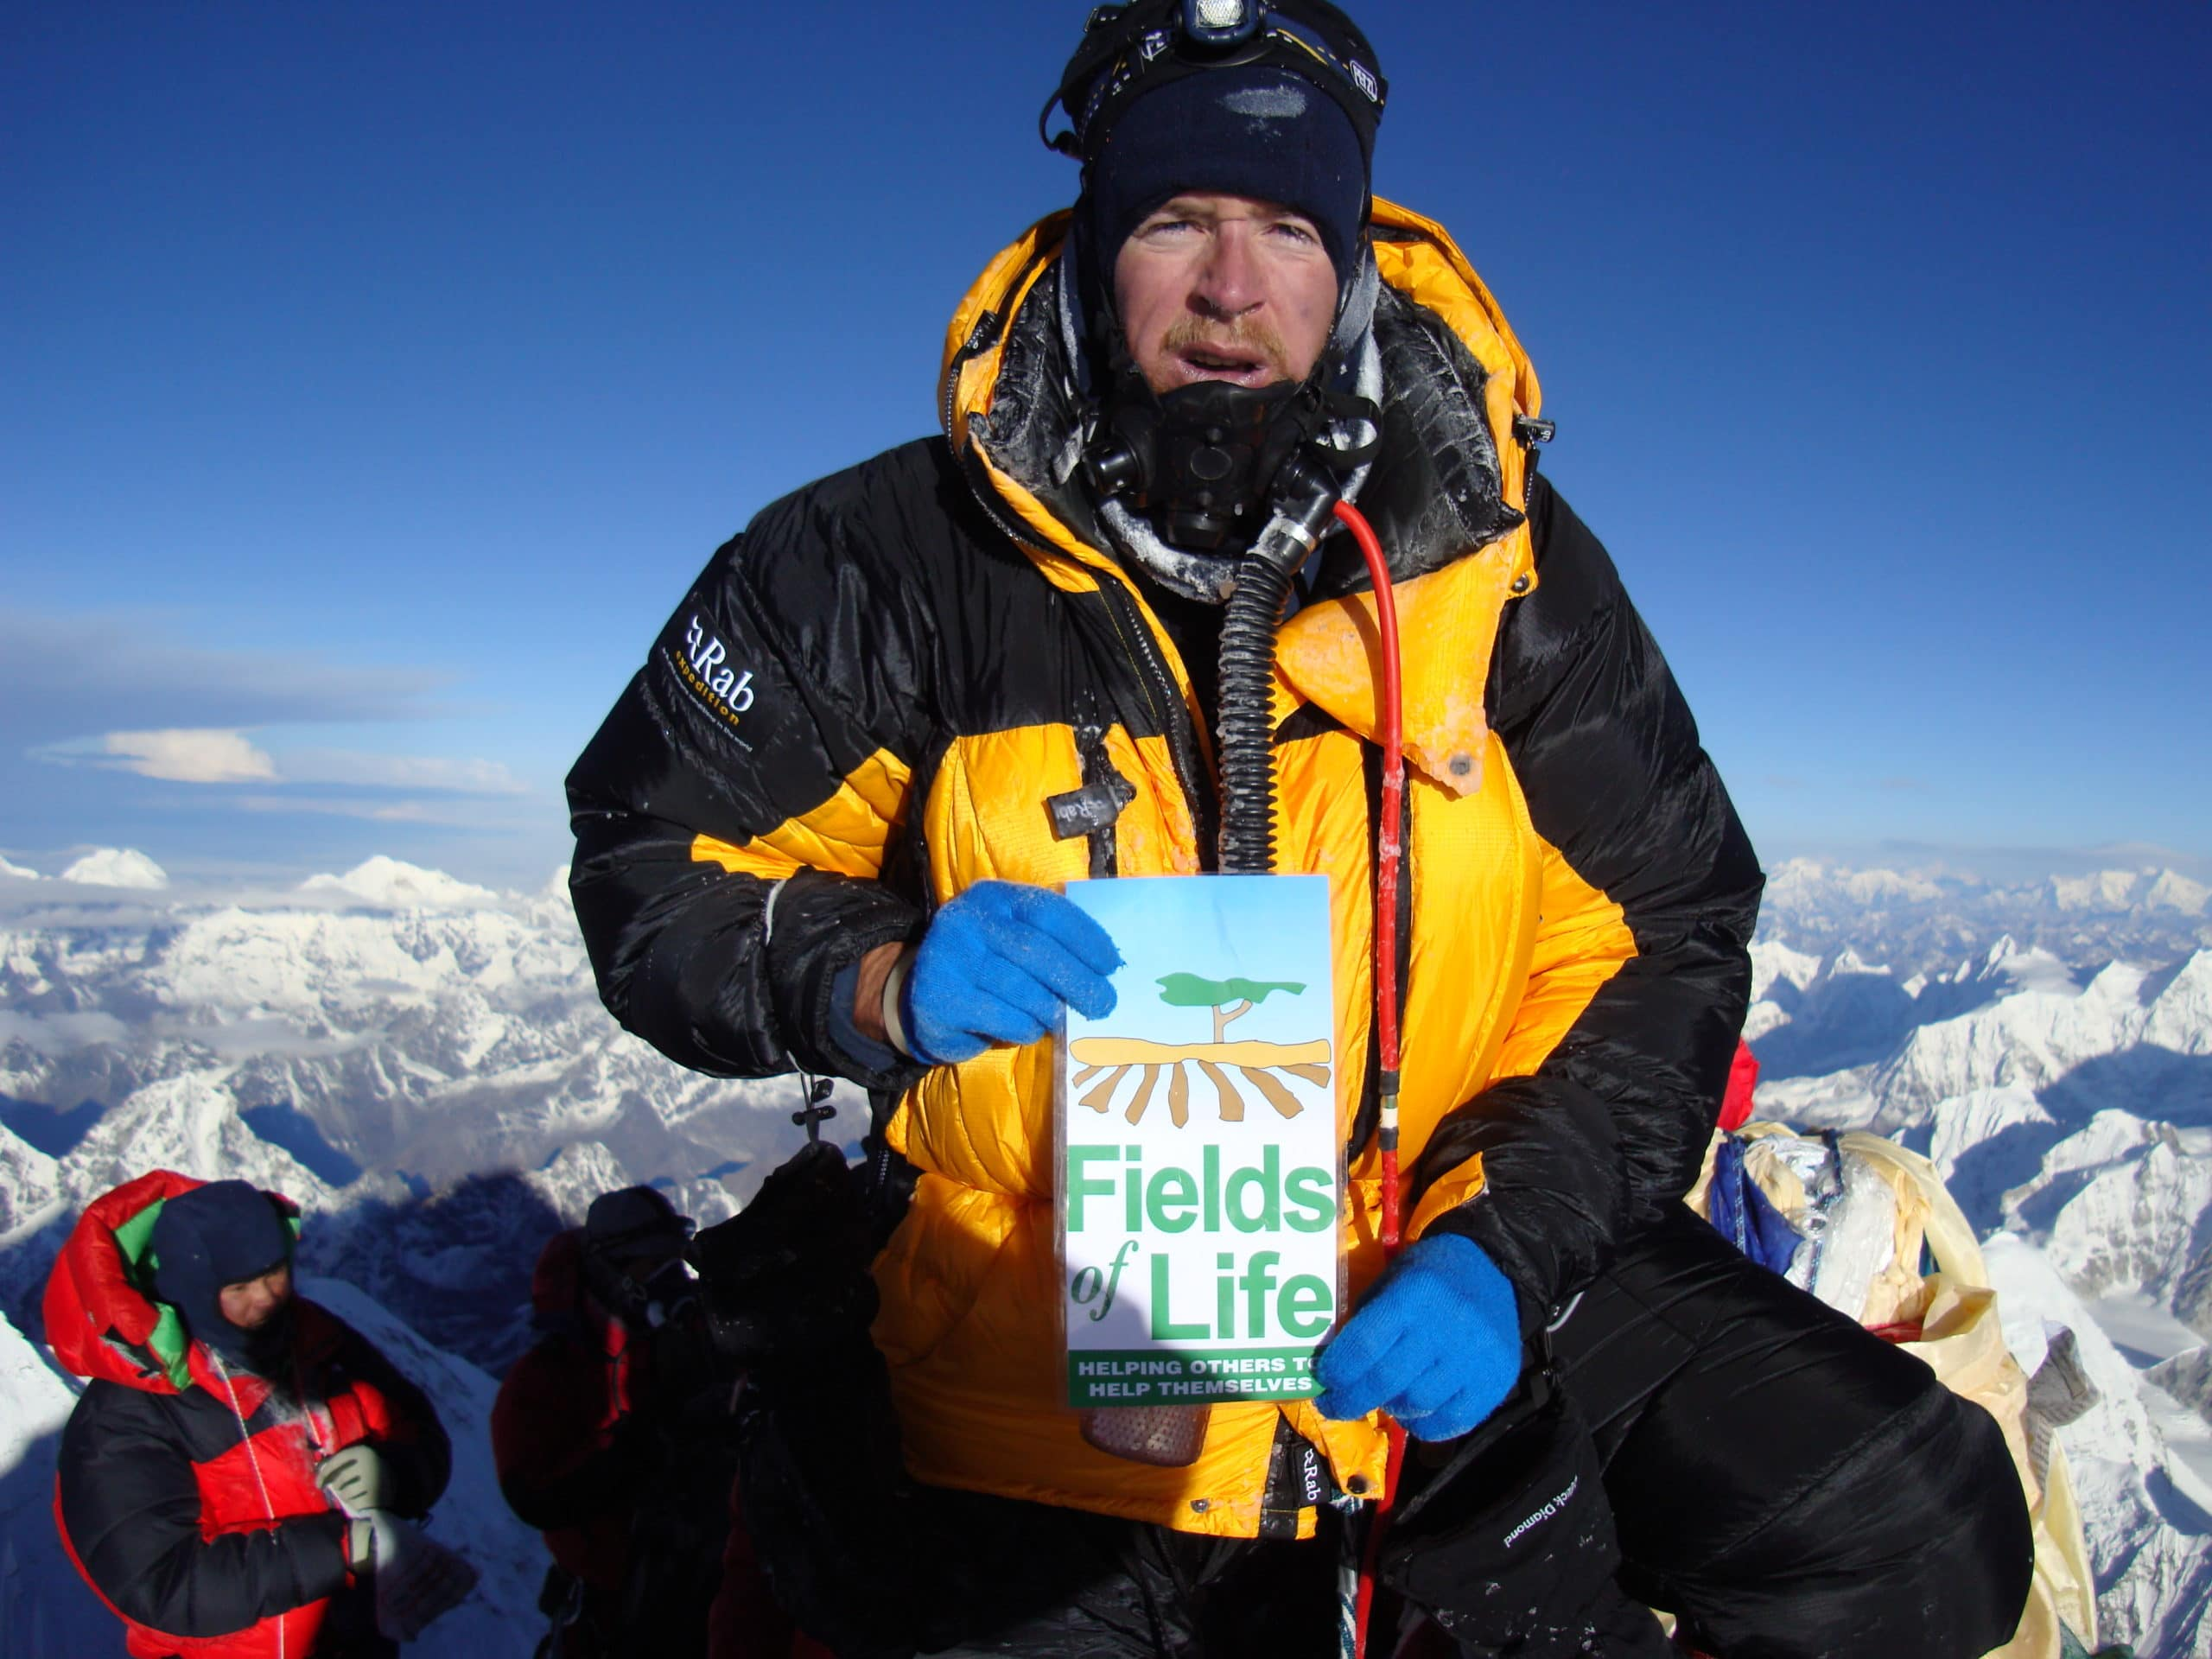 8 years on from my Mount Everest summit